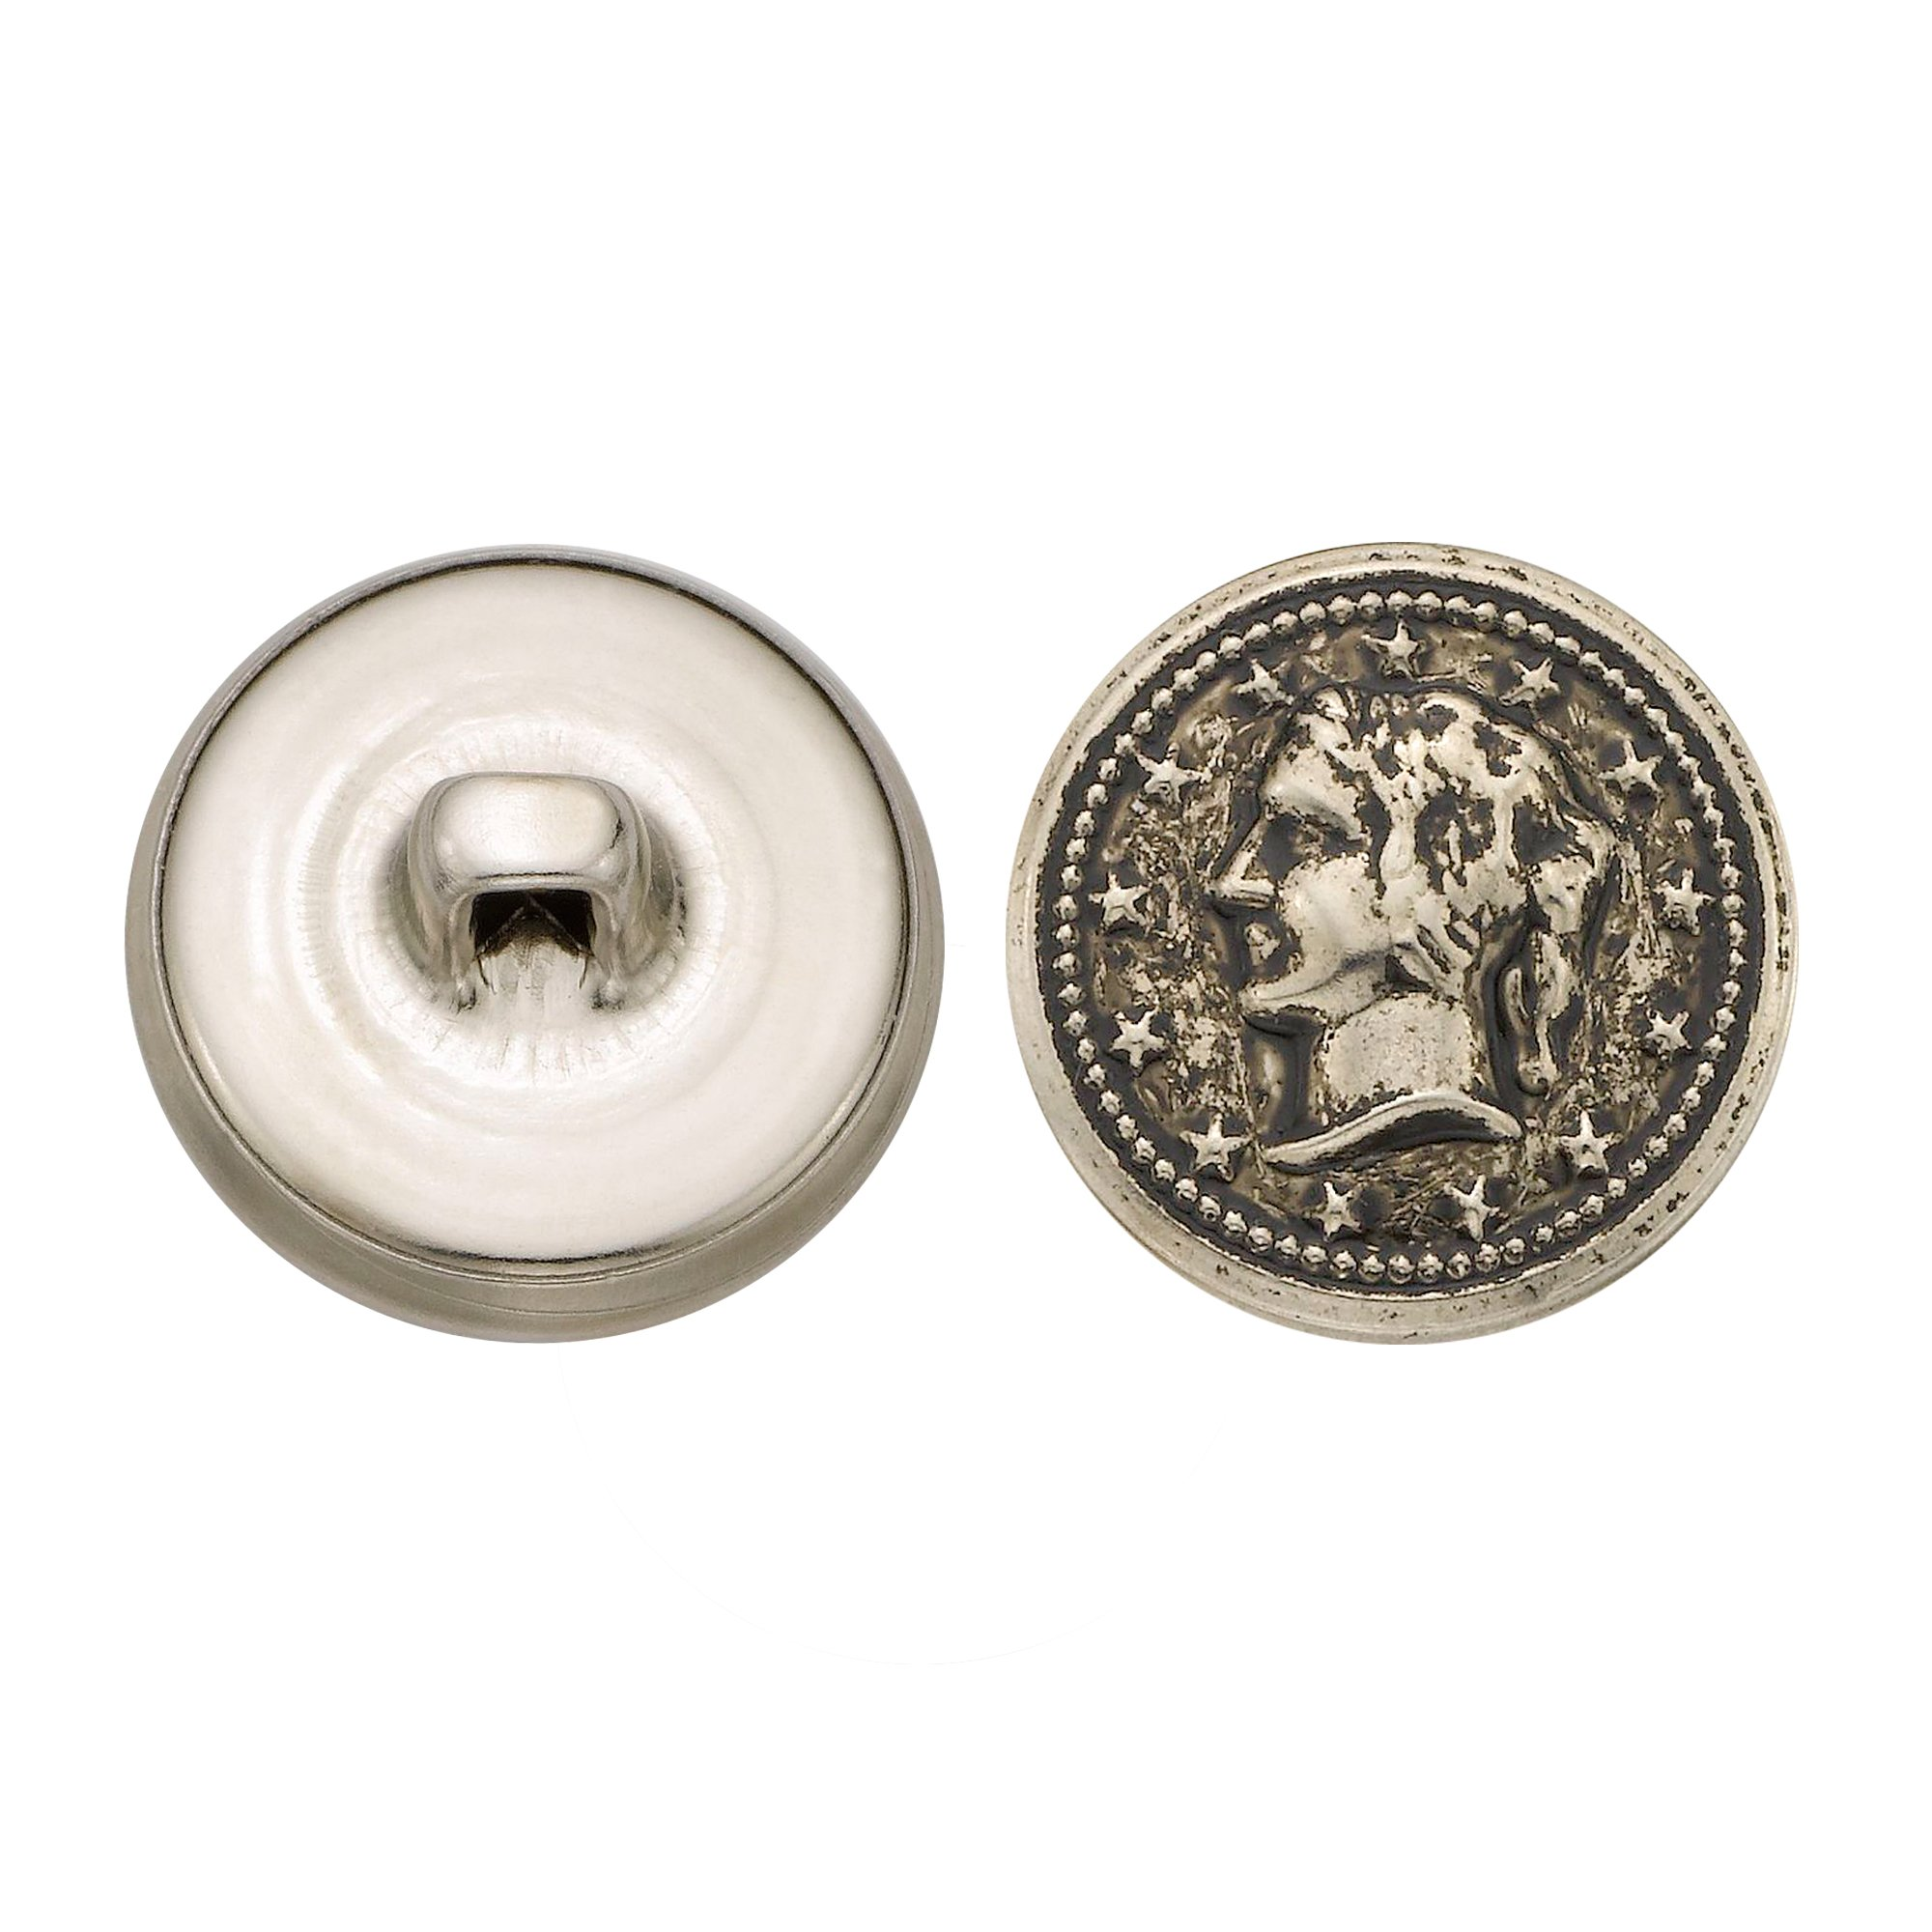 C&C Metal Products 5328 Lady Head Coin Metal Button, Size 30 Ligne, Antique Nickel, 36-Pack